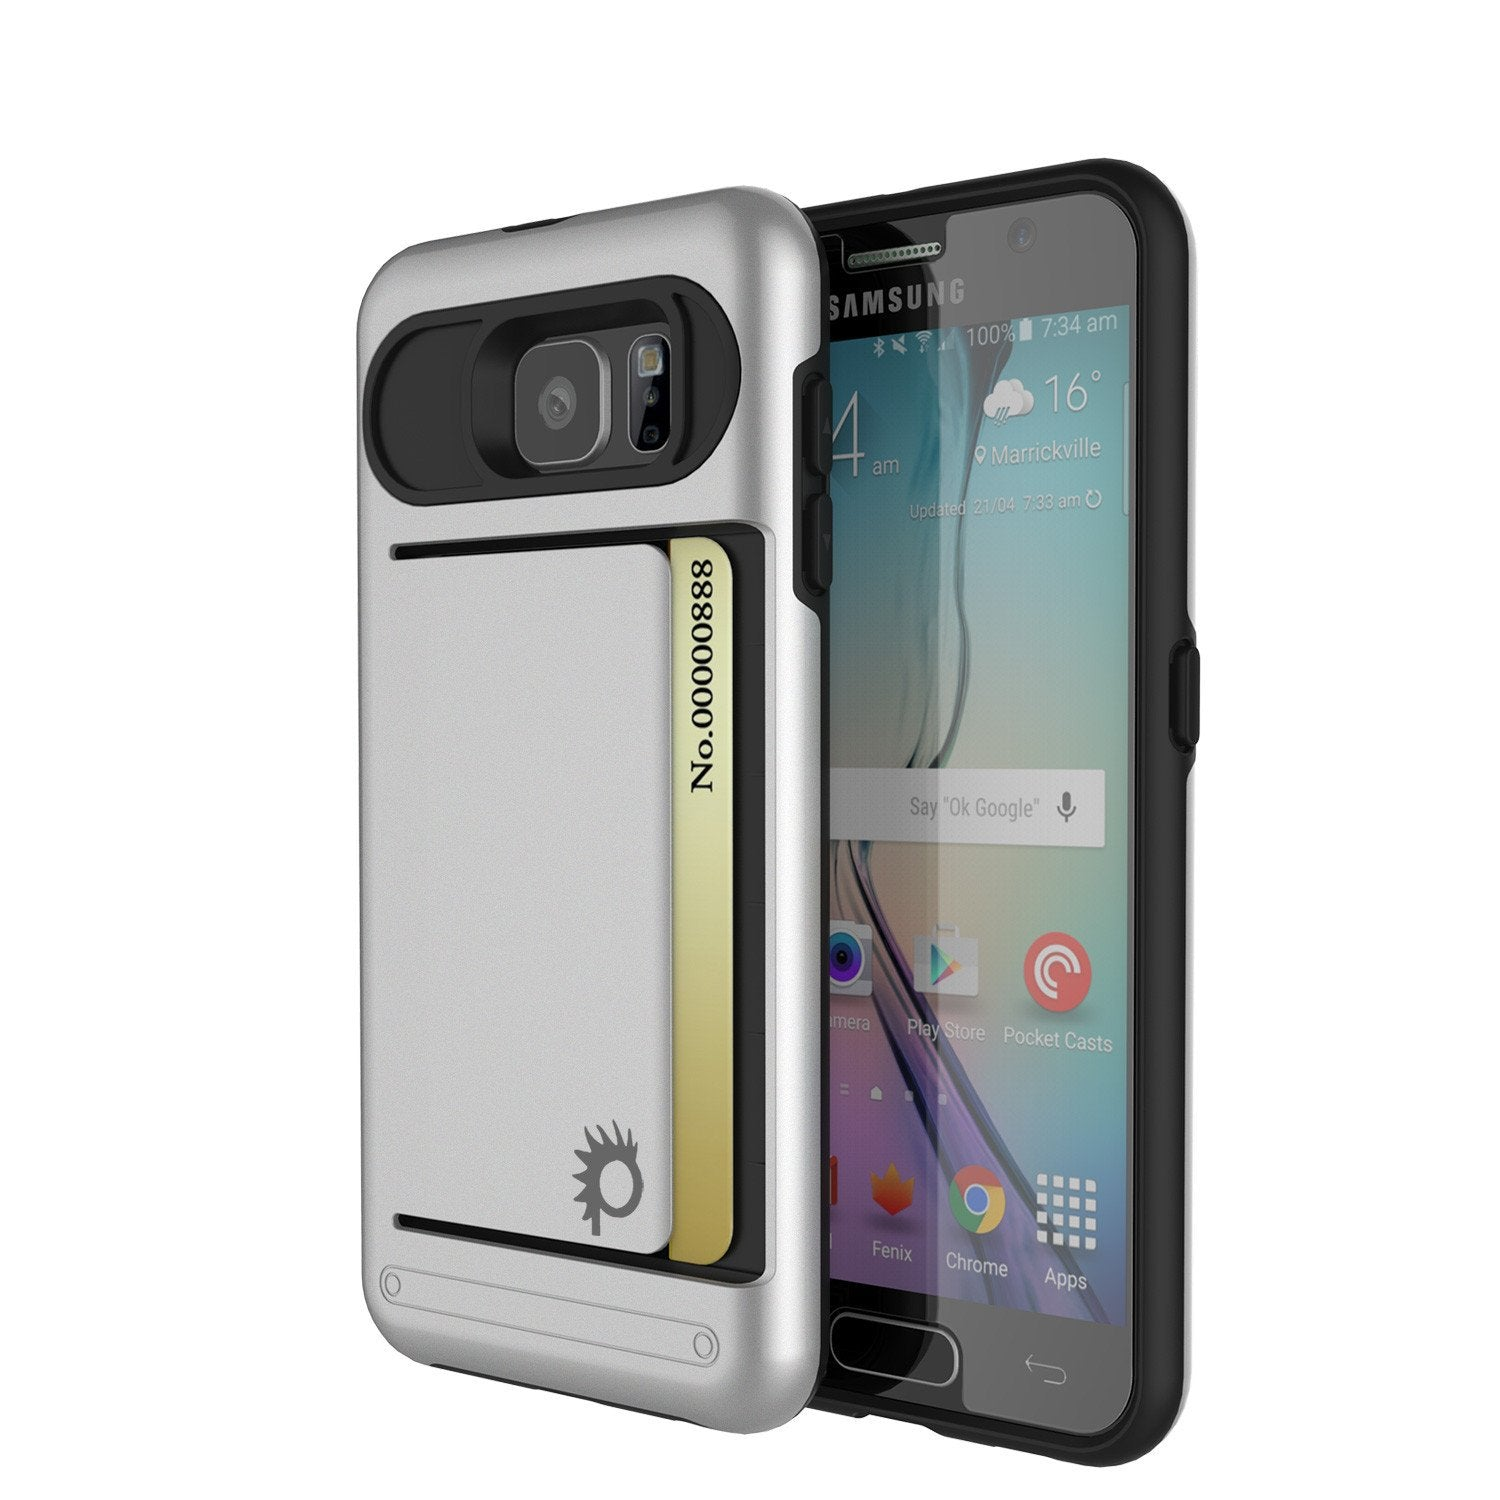 Galaxy S6 EDGE Plus Case PunkCase CLUTCH Silver Series Slim Armor Soft Cover w/ Screen Protector